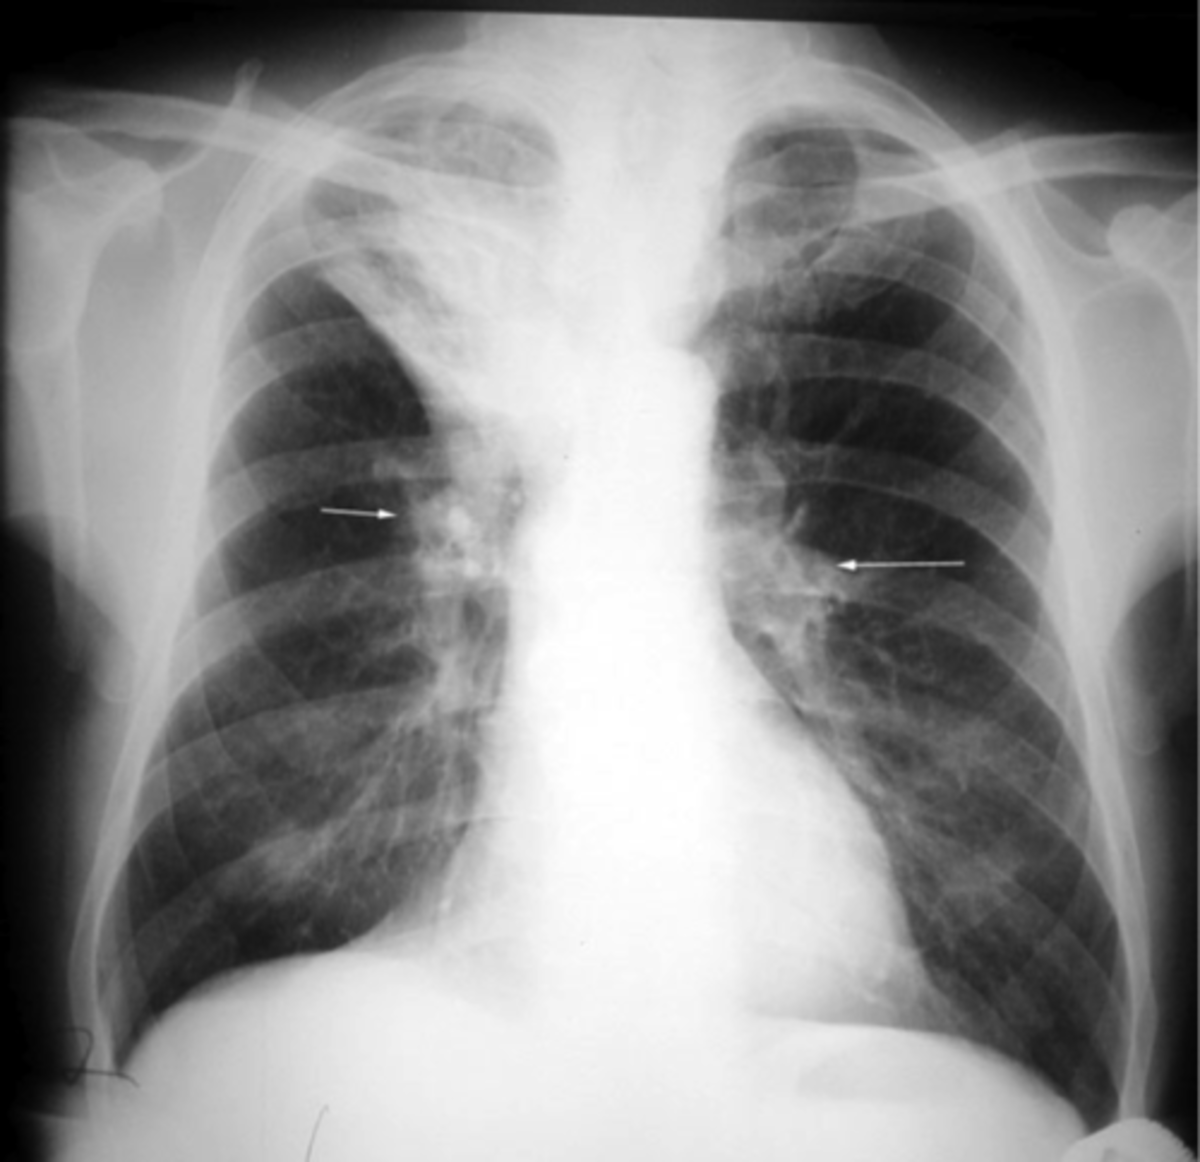 a type of artificial lung device, the Quadrox, was used after ECMO as a bridge to a dual lung transplant in ten-month-old Eleni Scott of the St. Louis suburb of Florissant, Missouri, who after transplantation returned to her home. Doctors have said i